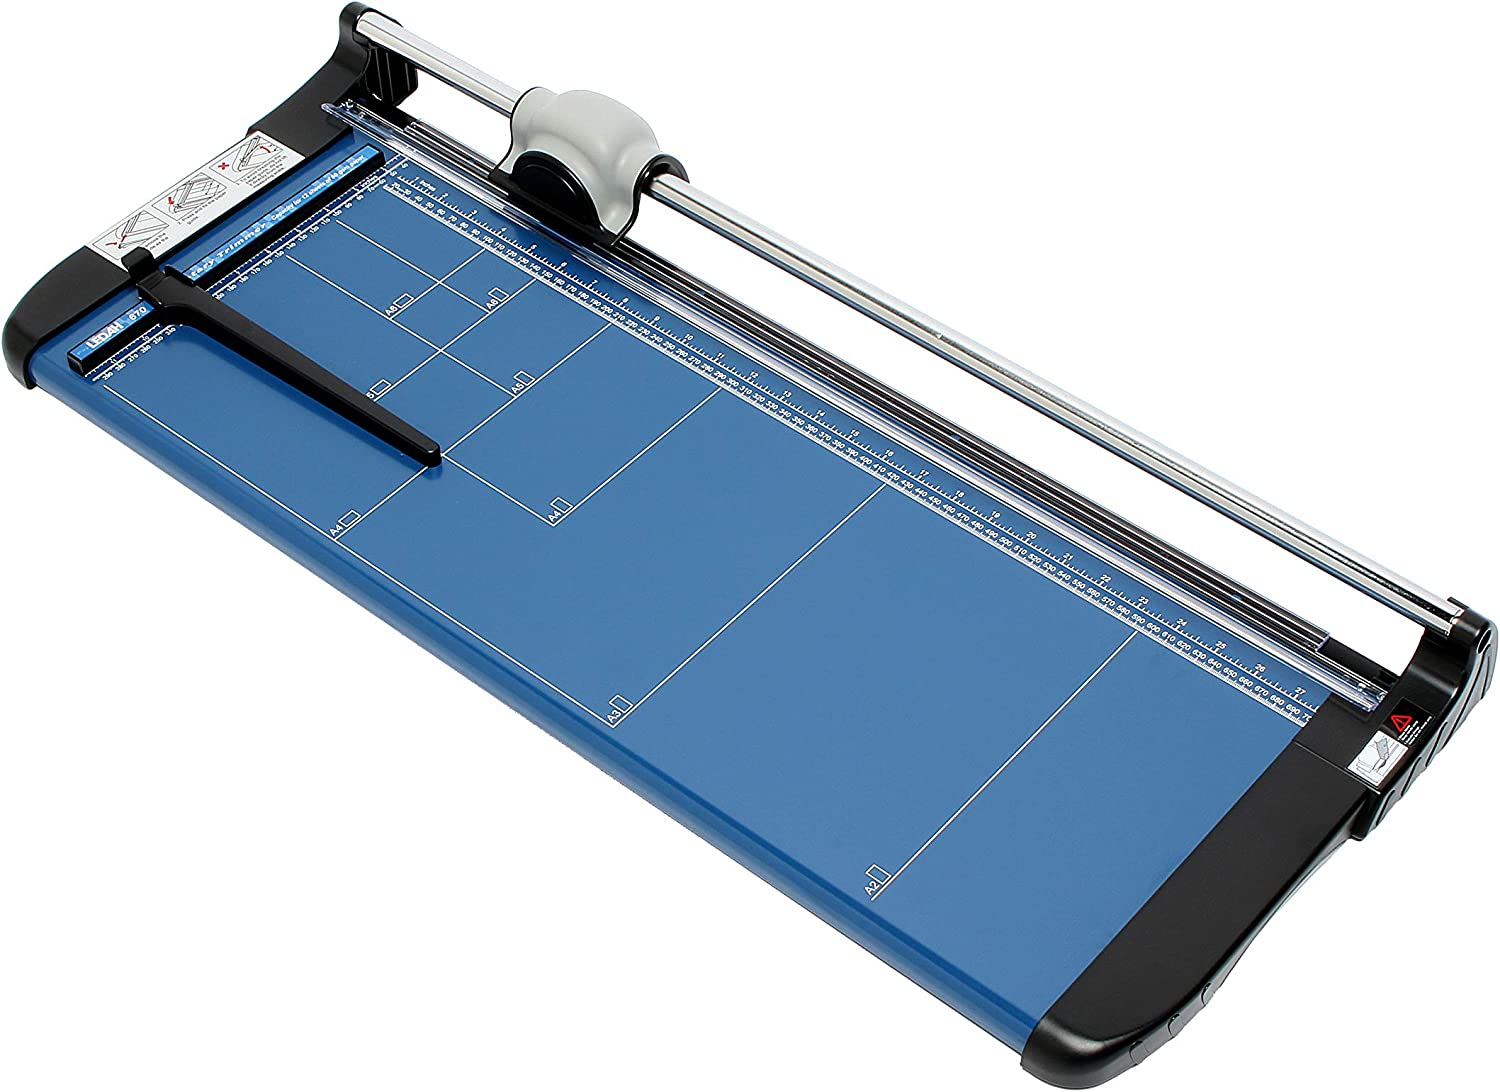 Dahle 527494 - Cizalla de rodillo, 2 mm: Amazon.es: Oficina y ...